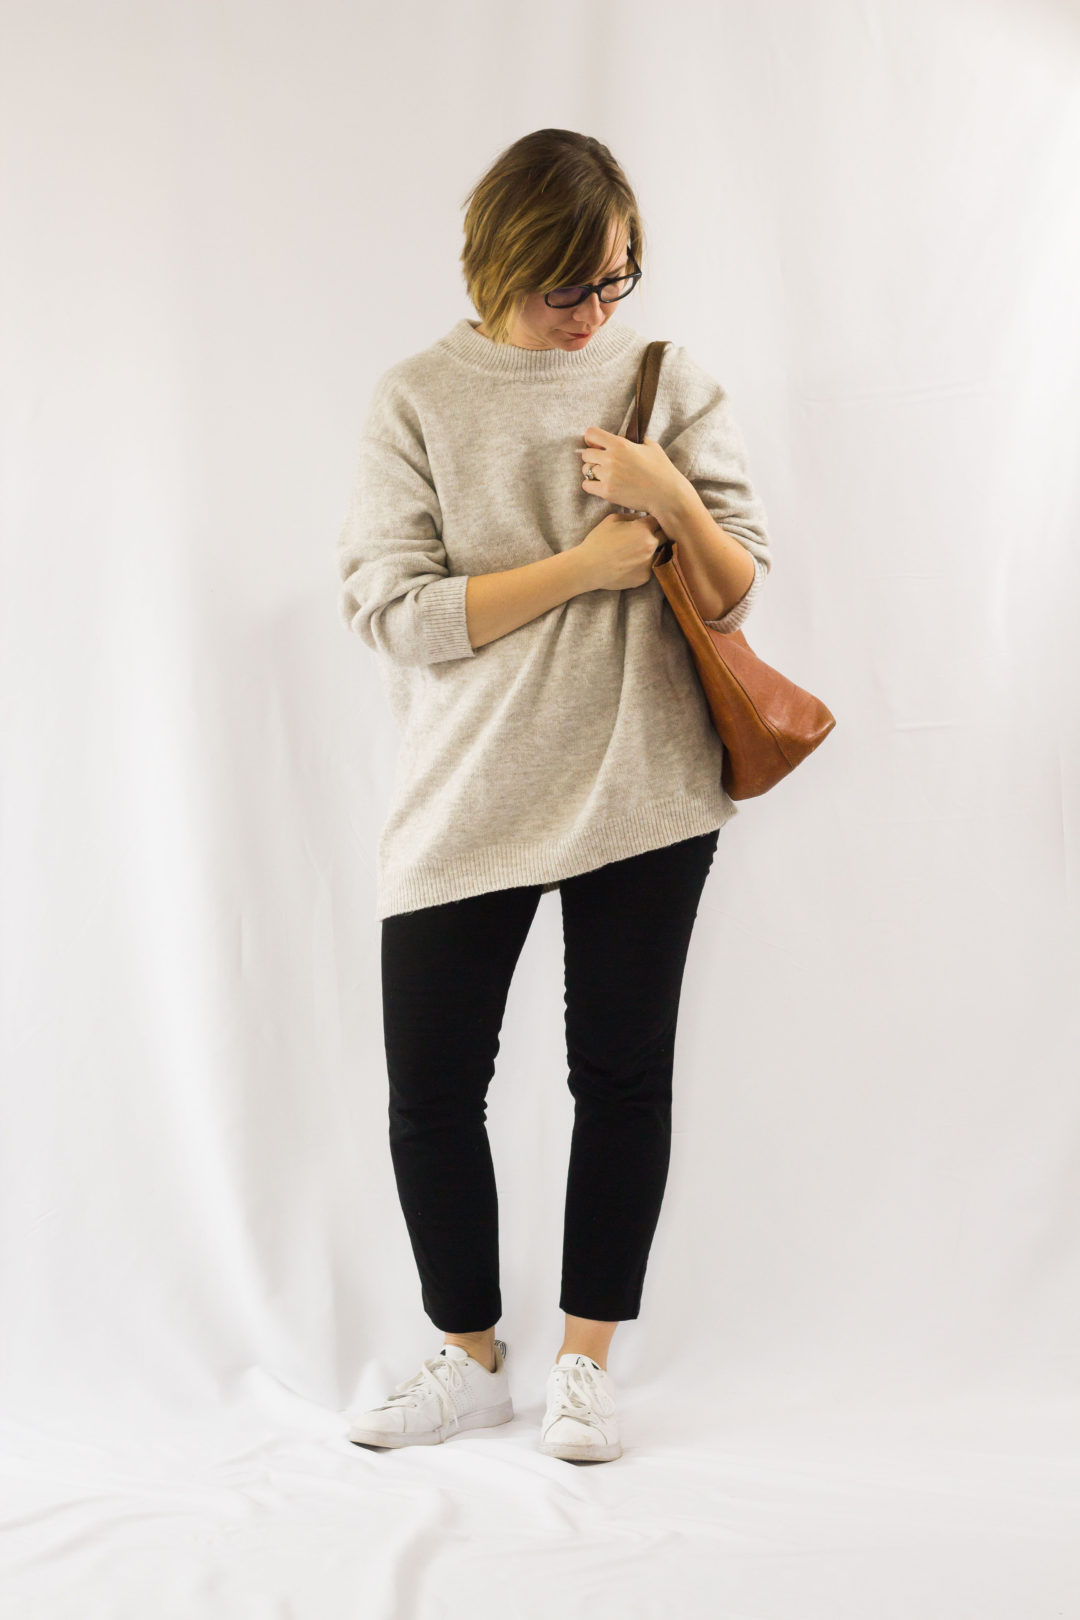 Winter Capsule Outfit No. 50: Snap Judgments & What to Do About Them